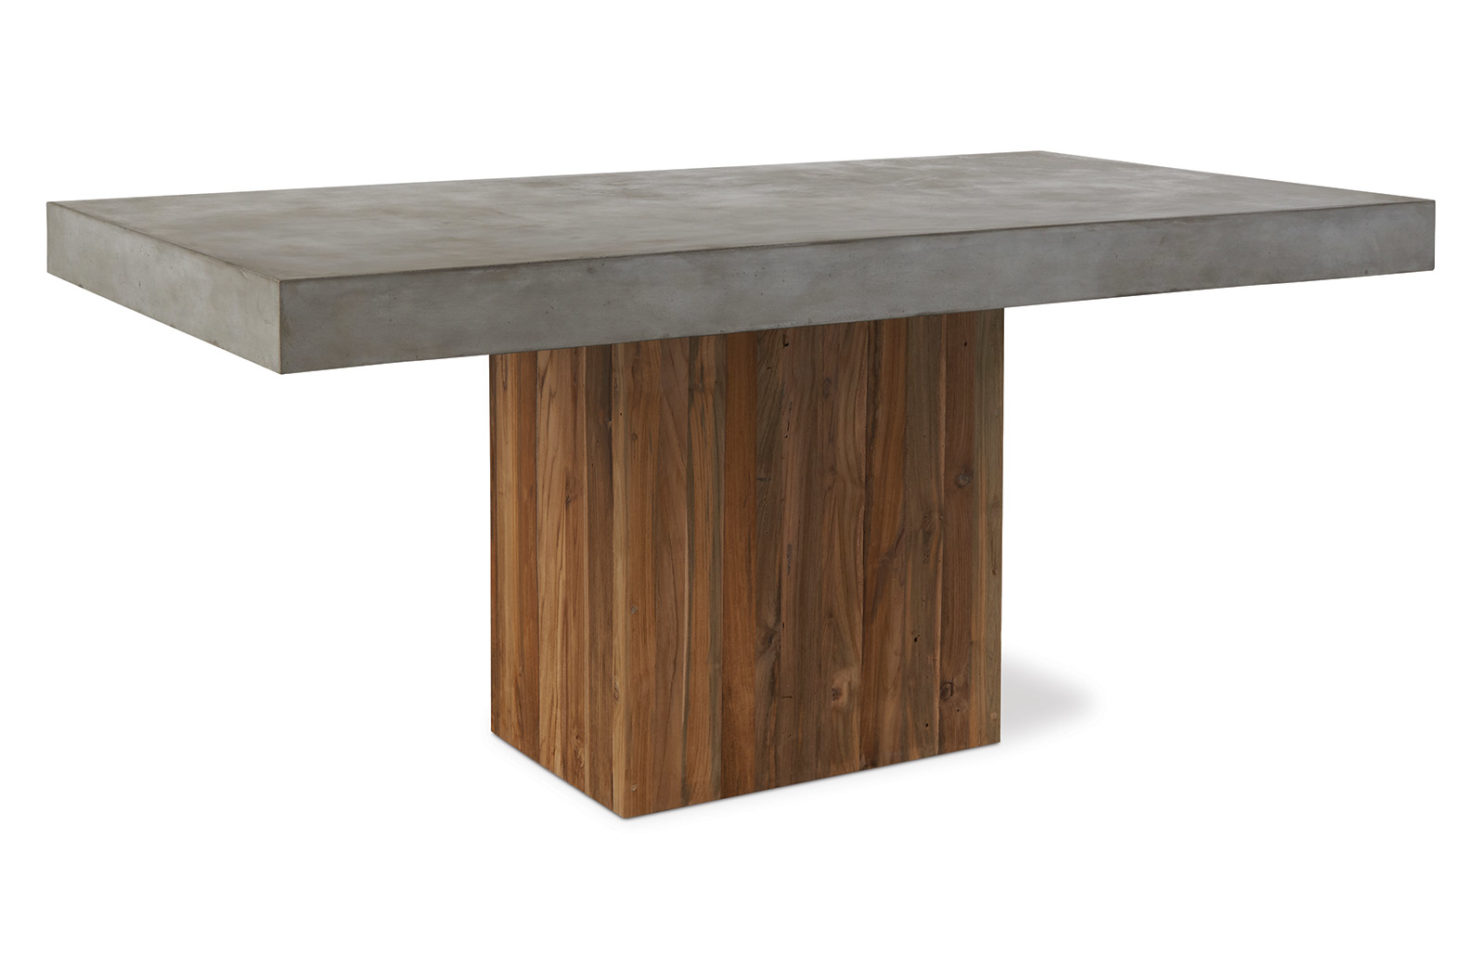 Perpetual Sparta Table 501FT043P2G, Gray